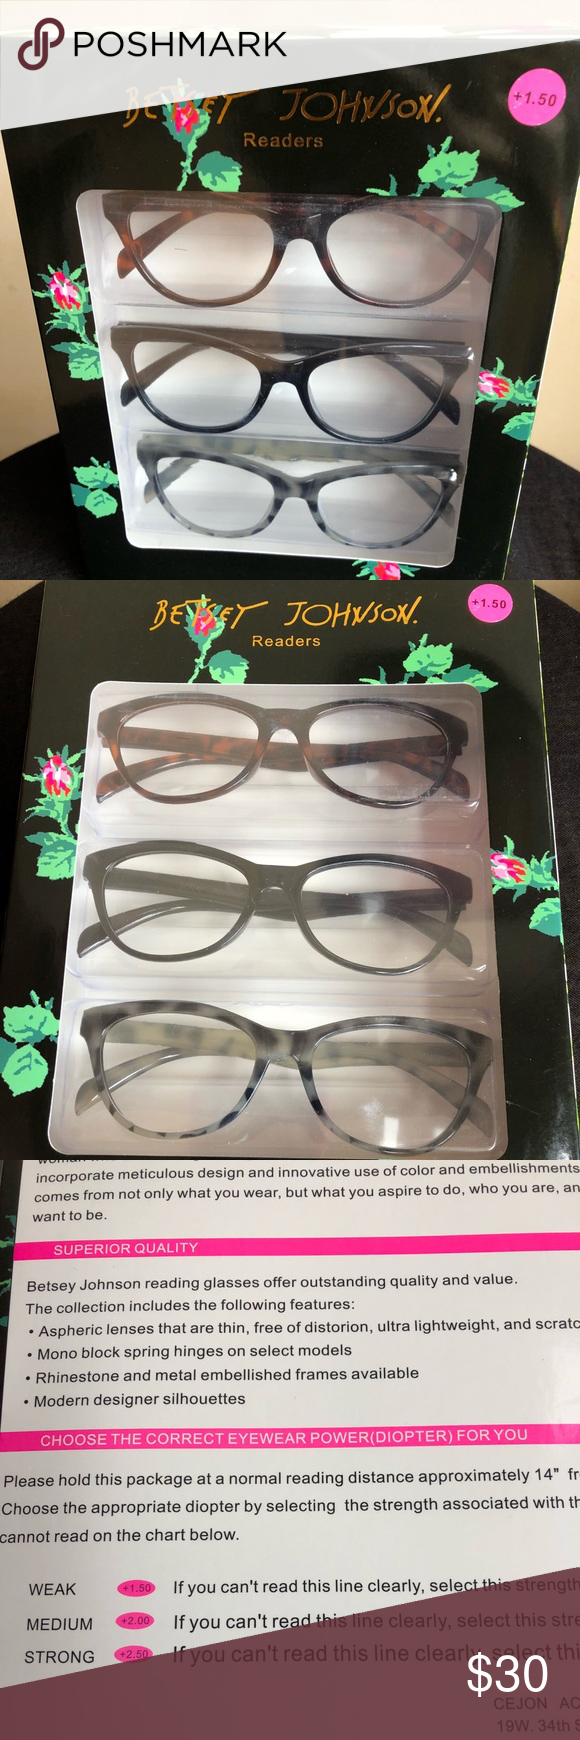 81fb2c48a691 Betsey Johnson 3 Pack Readers Glasses Betsey Johnson 3 pack readers glasses  Perfect for reading in style! Will match any outfit. Very chic set of 3  reading ...